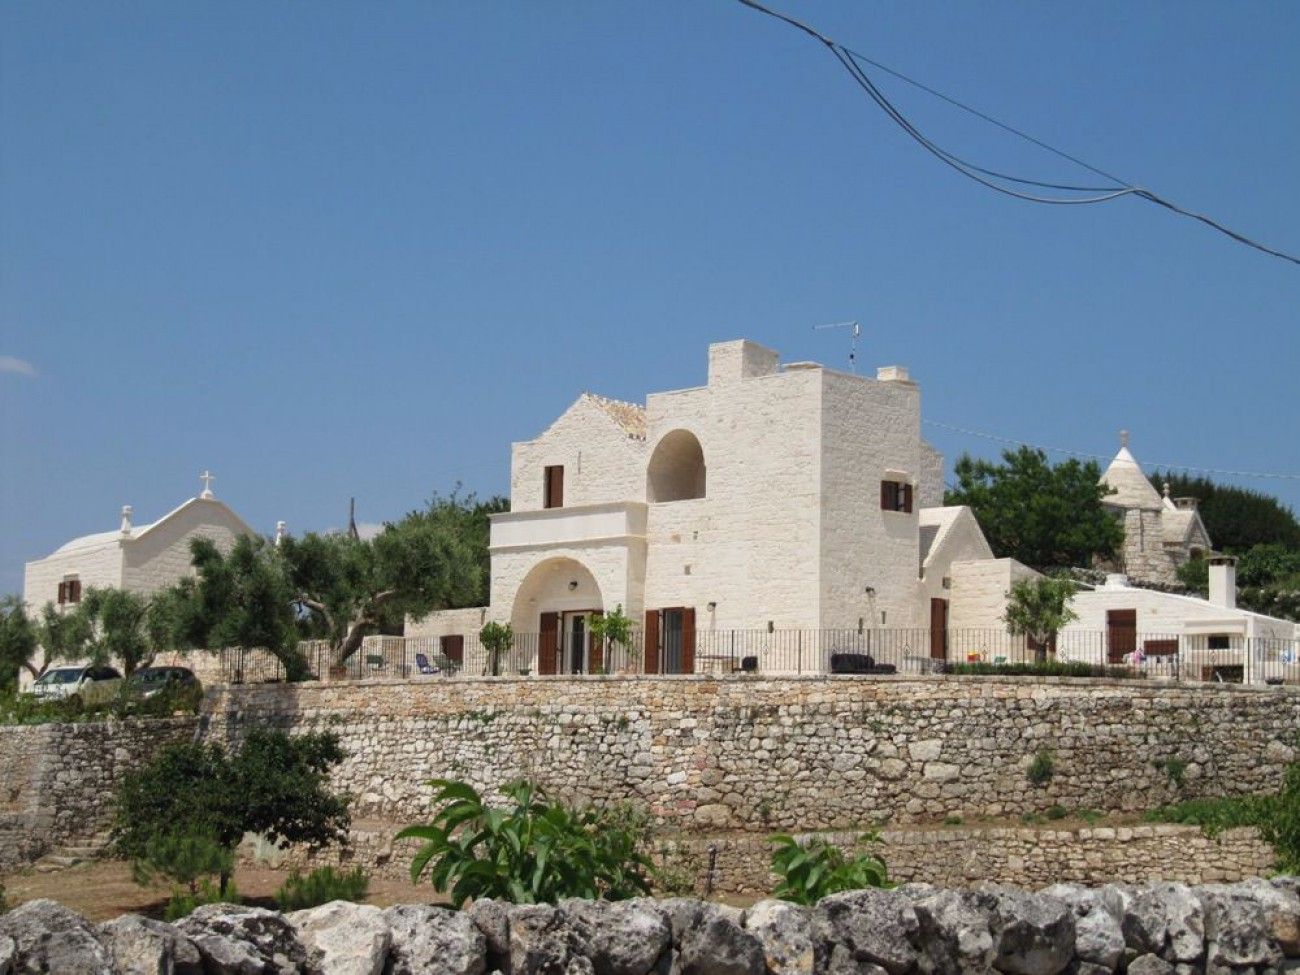 Ancient farmhouse in Martina Franca